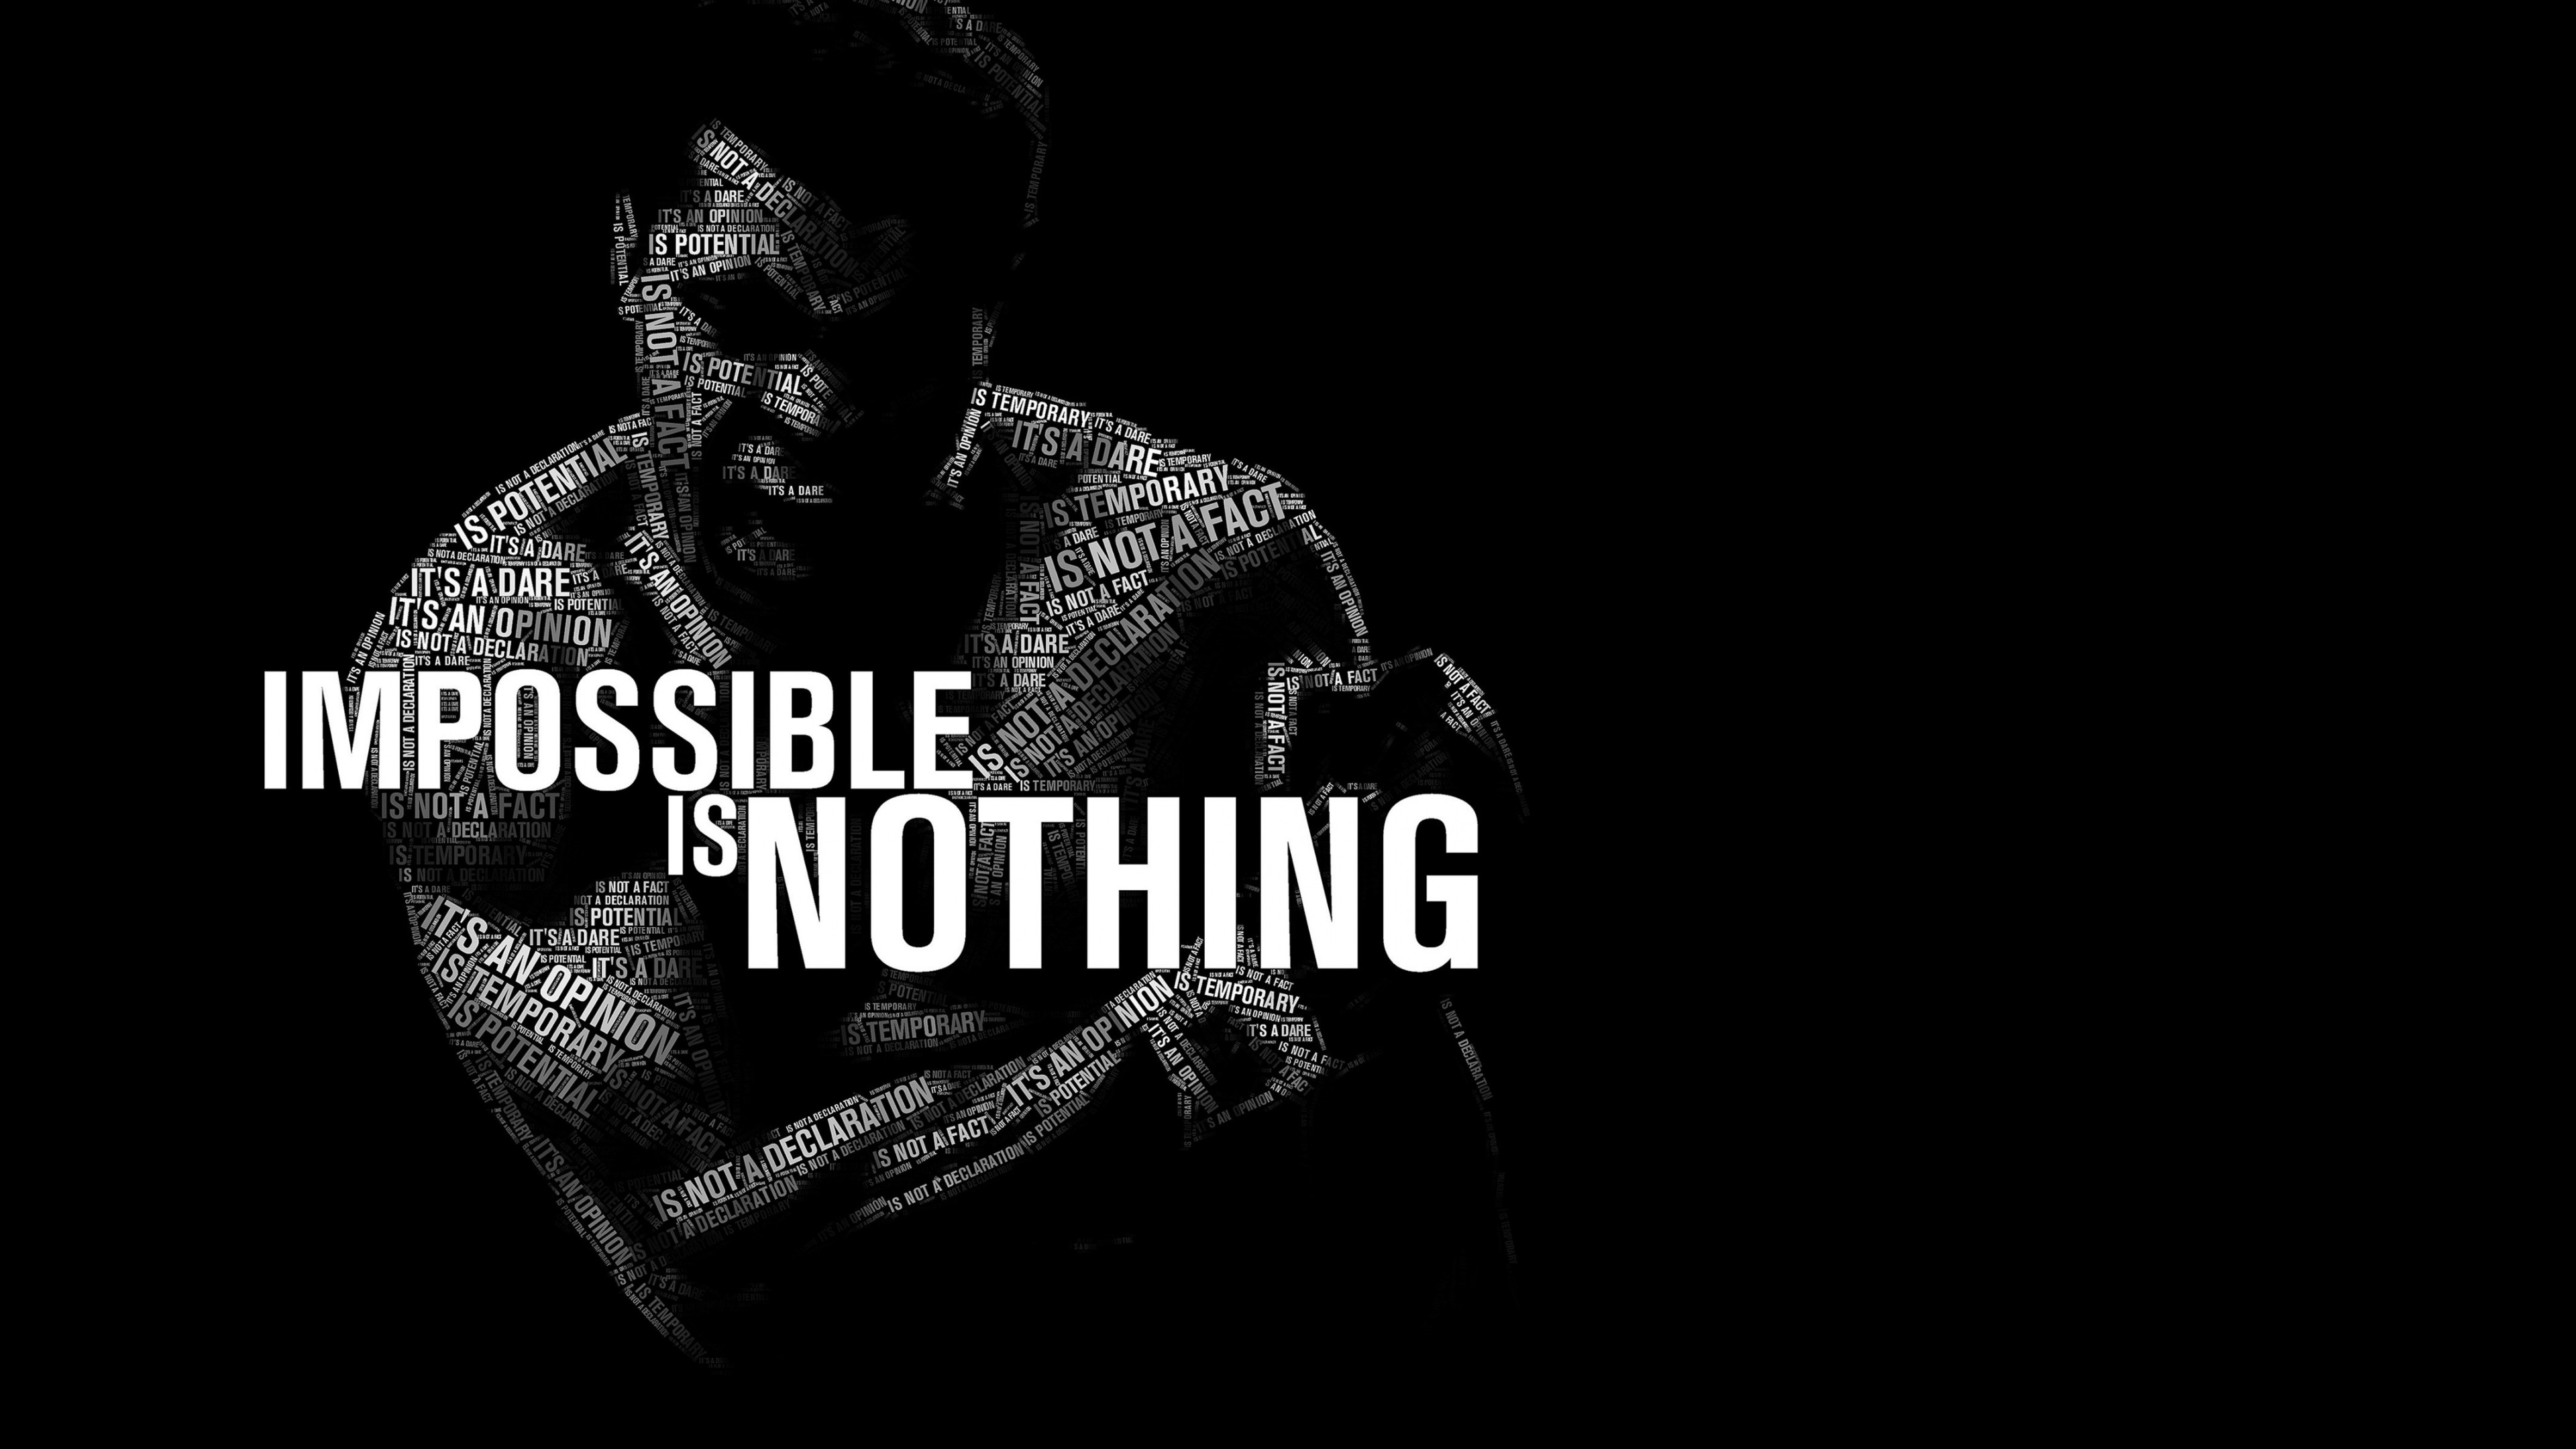 Impossible Is Nothing Muhammad Ali Hd Wallpaper For 4k 3840x2160 Screens Hdwallpapers Net